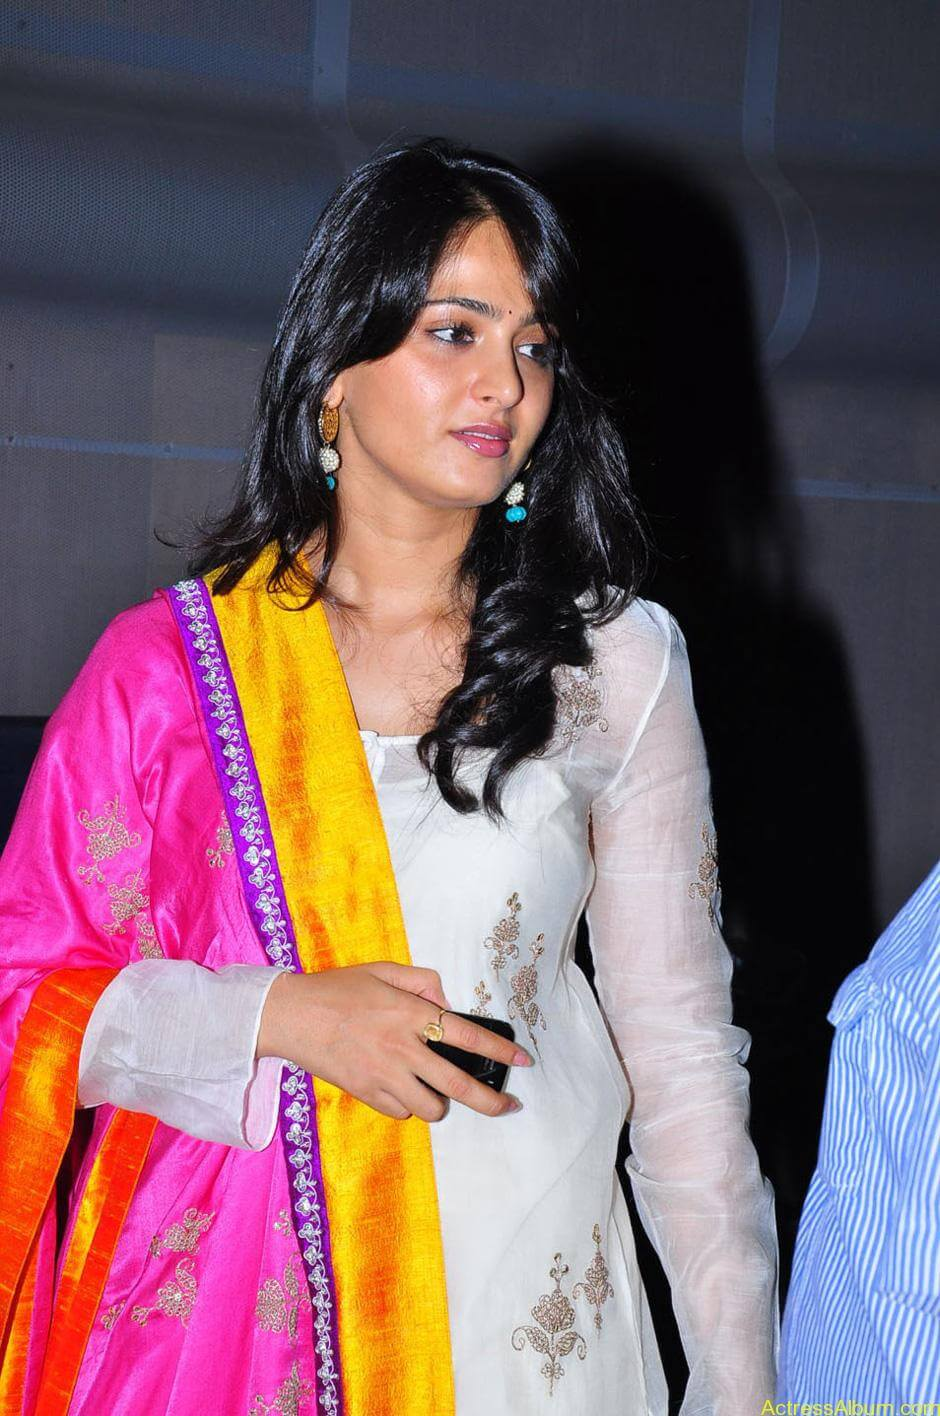 Anushka-Shetty-05-23-2011-Stills-013